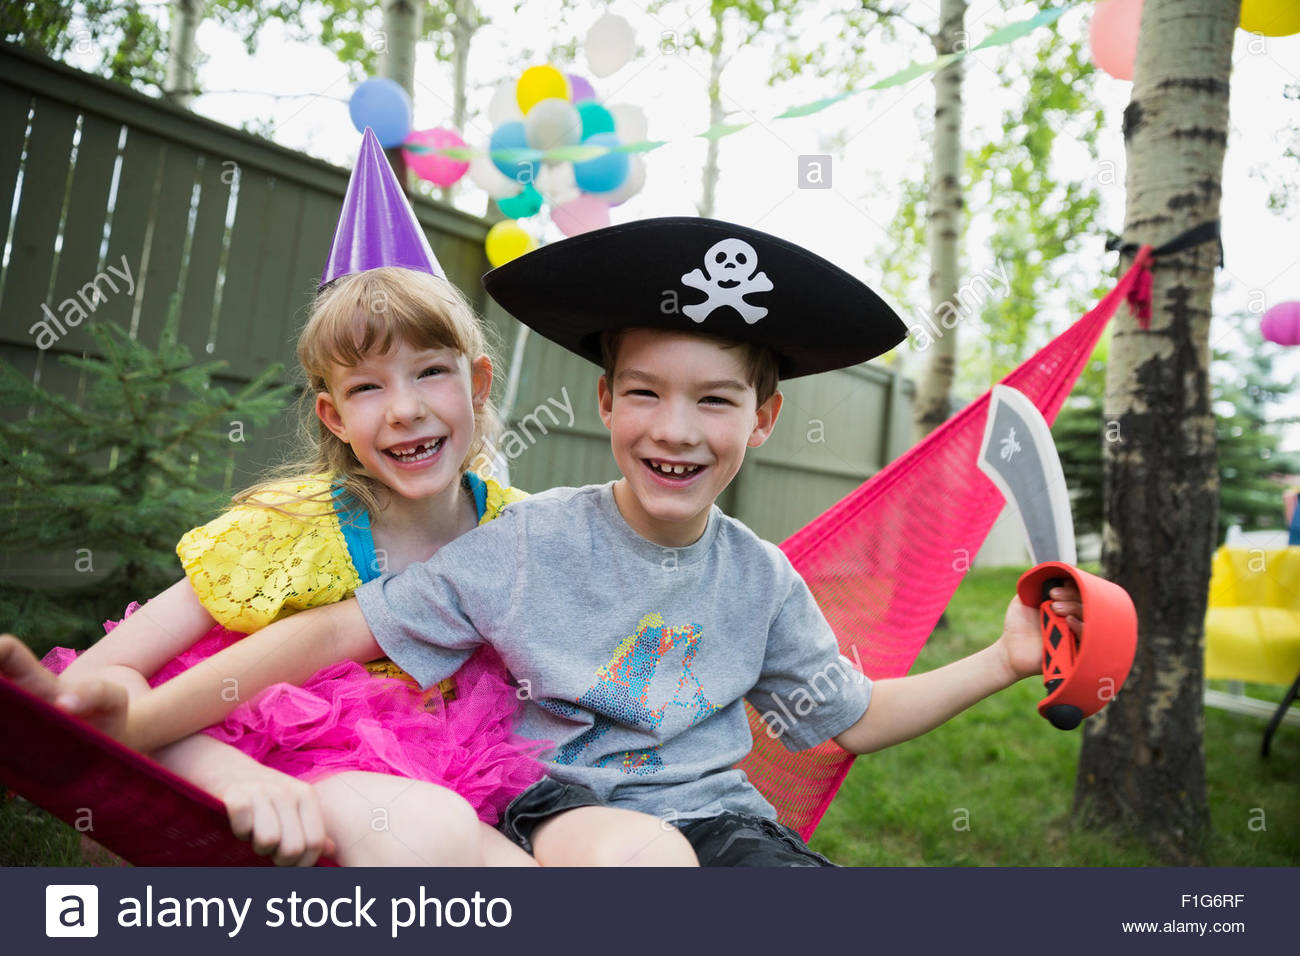 Portrait smiling brother and sister costumes on hammock - Stock Image